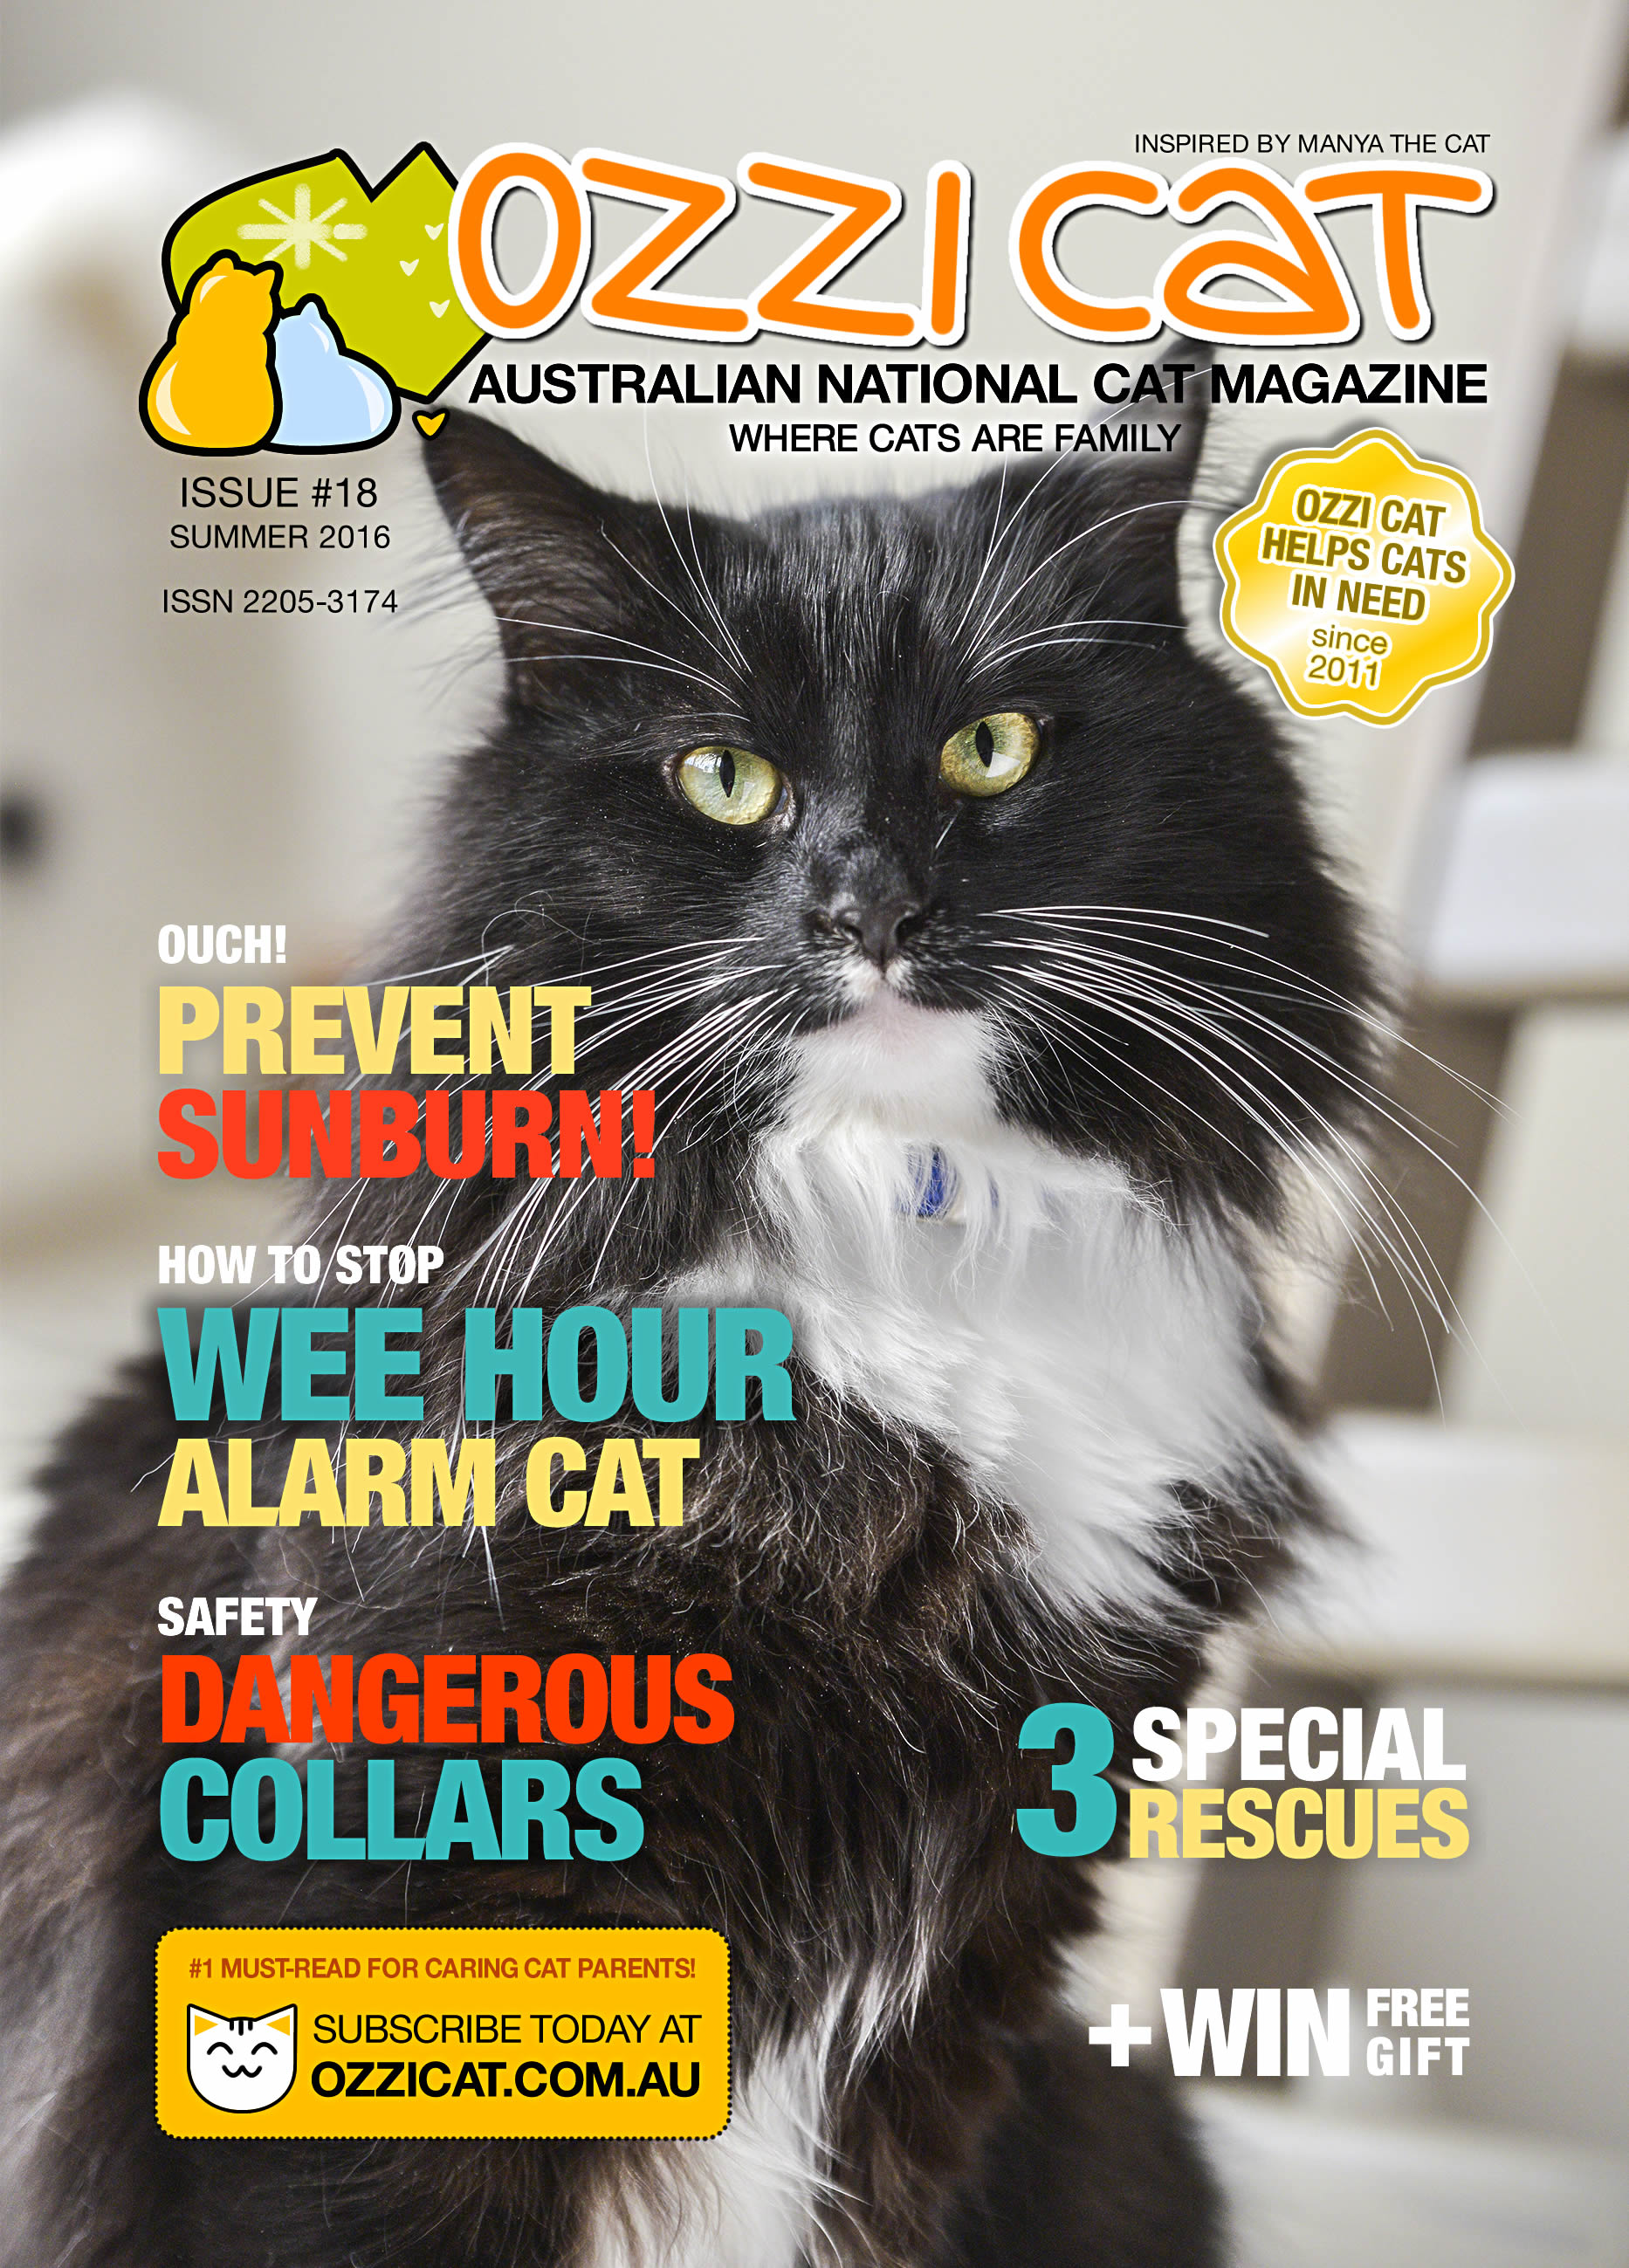 Ozzi Cat Magazine - Issue 18 - Summer 2016